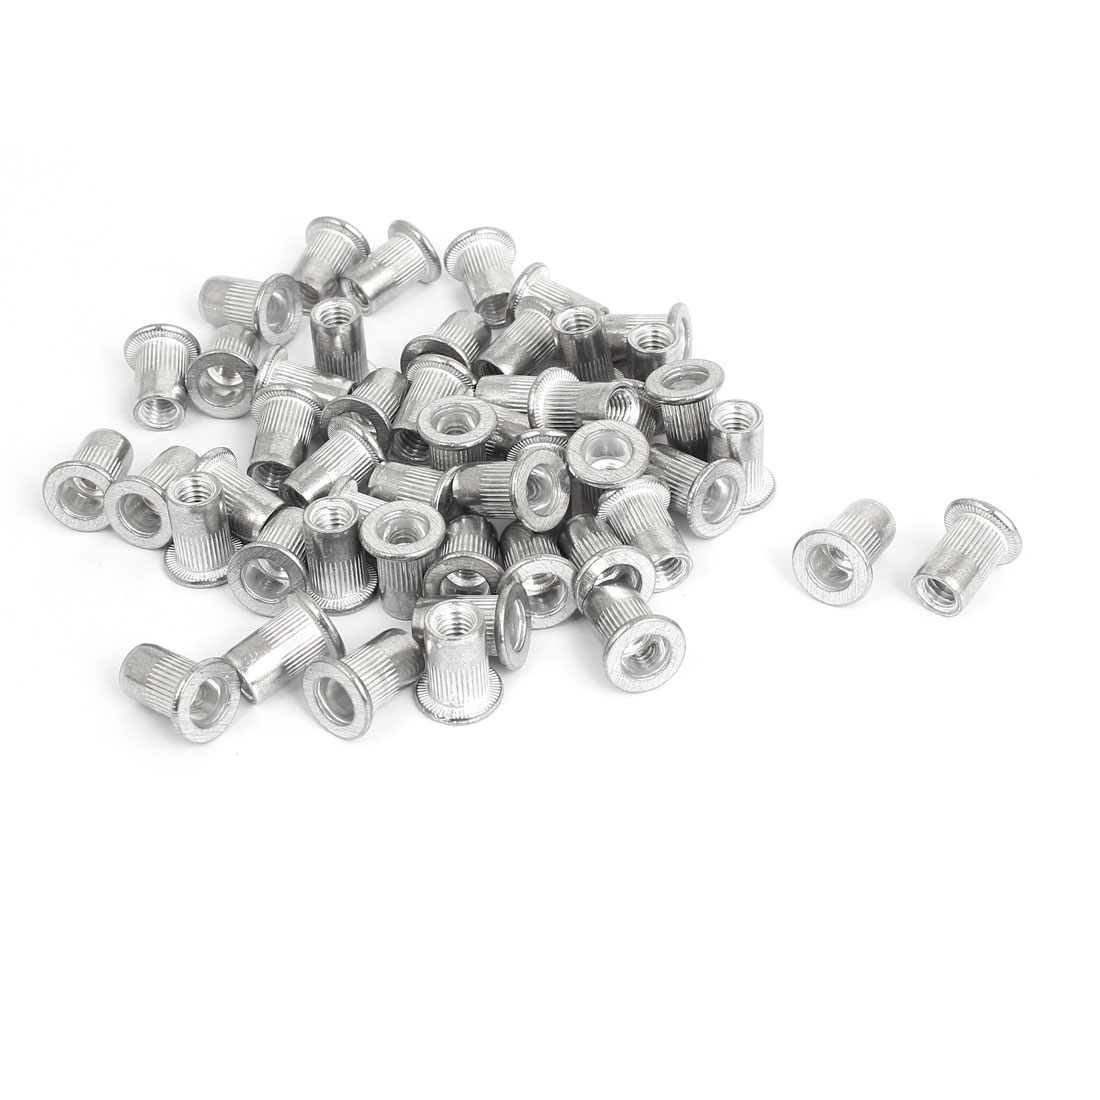 M6 Thread Aluminum Rivet Nut Insert Nutsert 50pcs